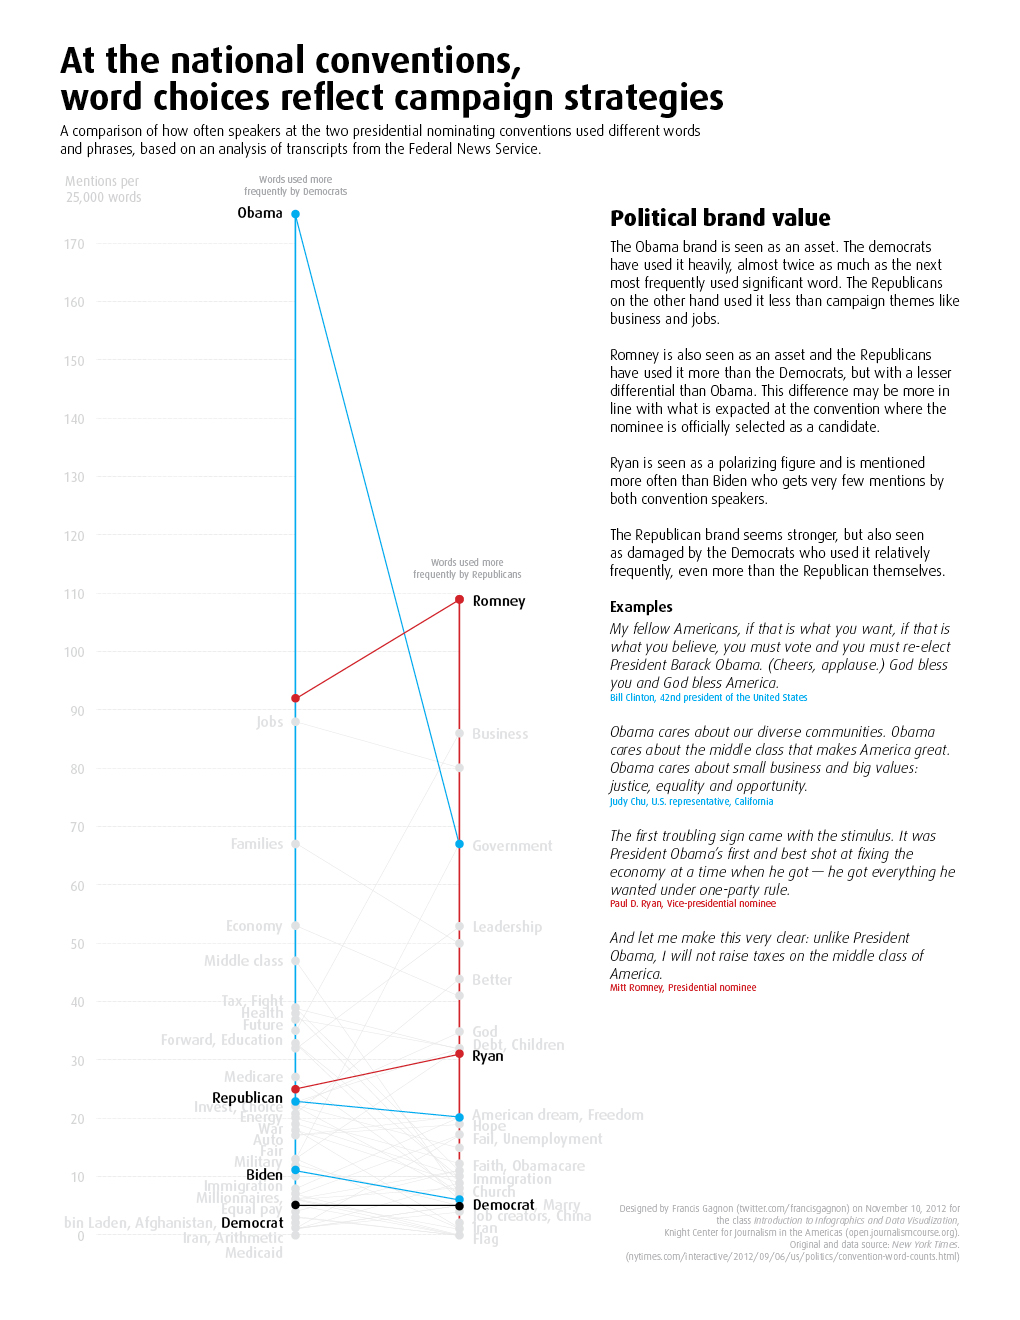 NYT Convention Words Brand